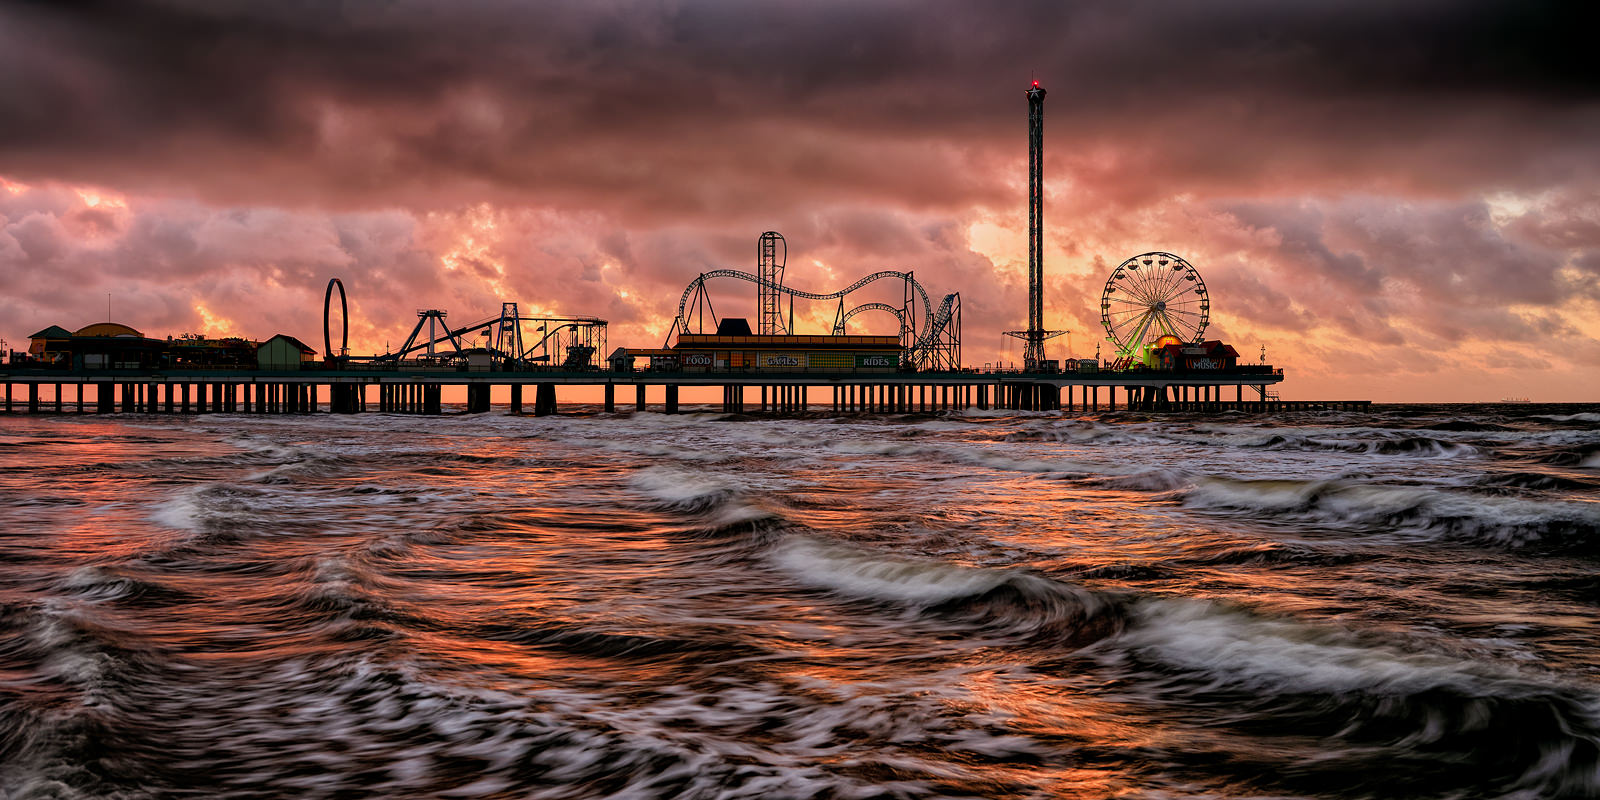 A Fine Art Limited Edition  The new Galveston Island Historic Pleasure Pier was built 1,130 feet out over the Gulf of Mexico...